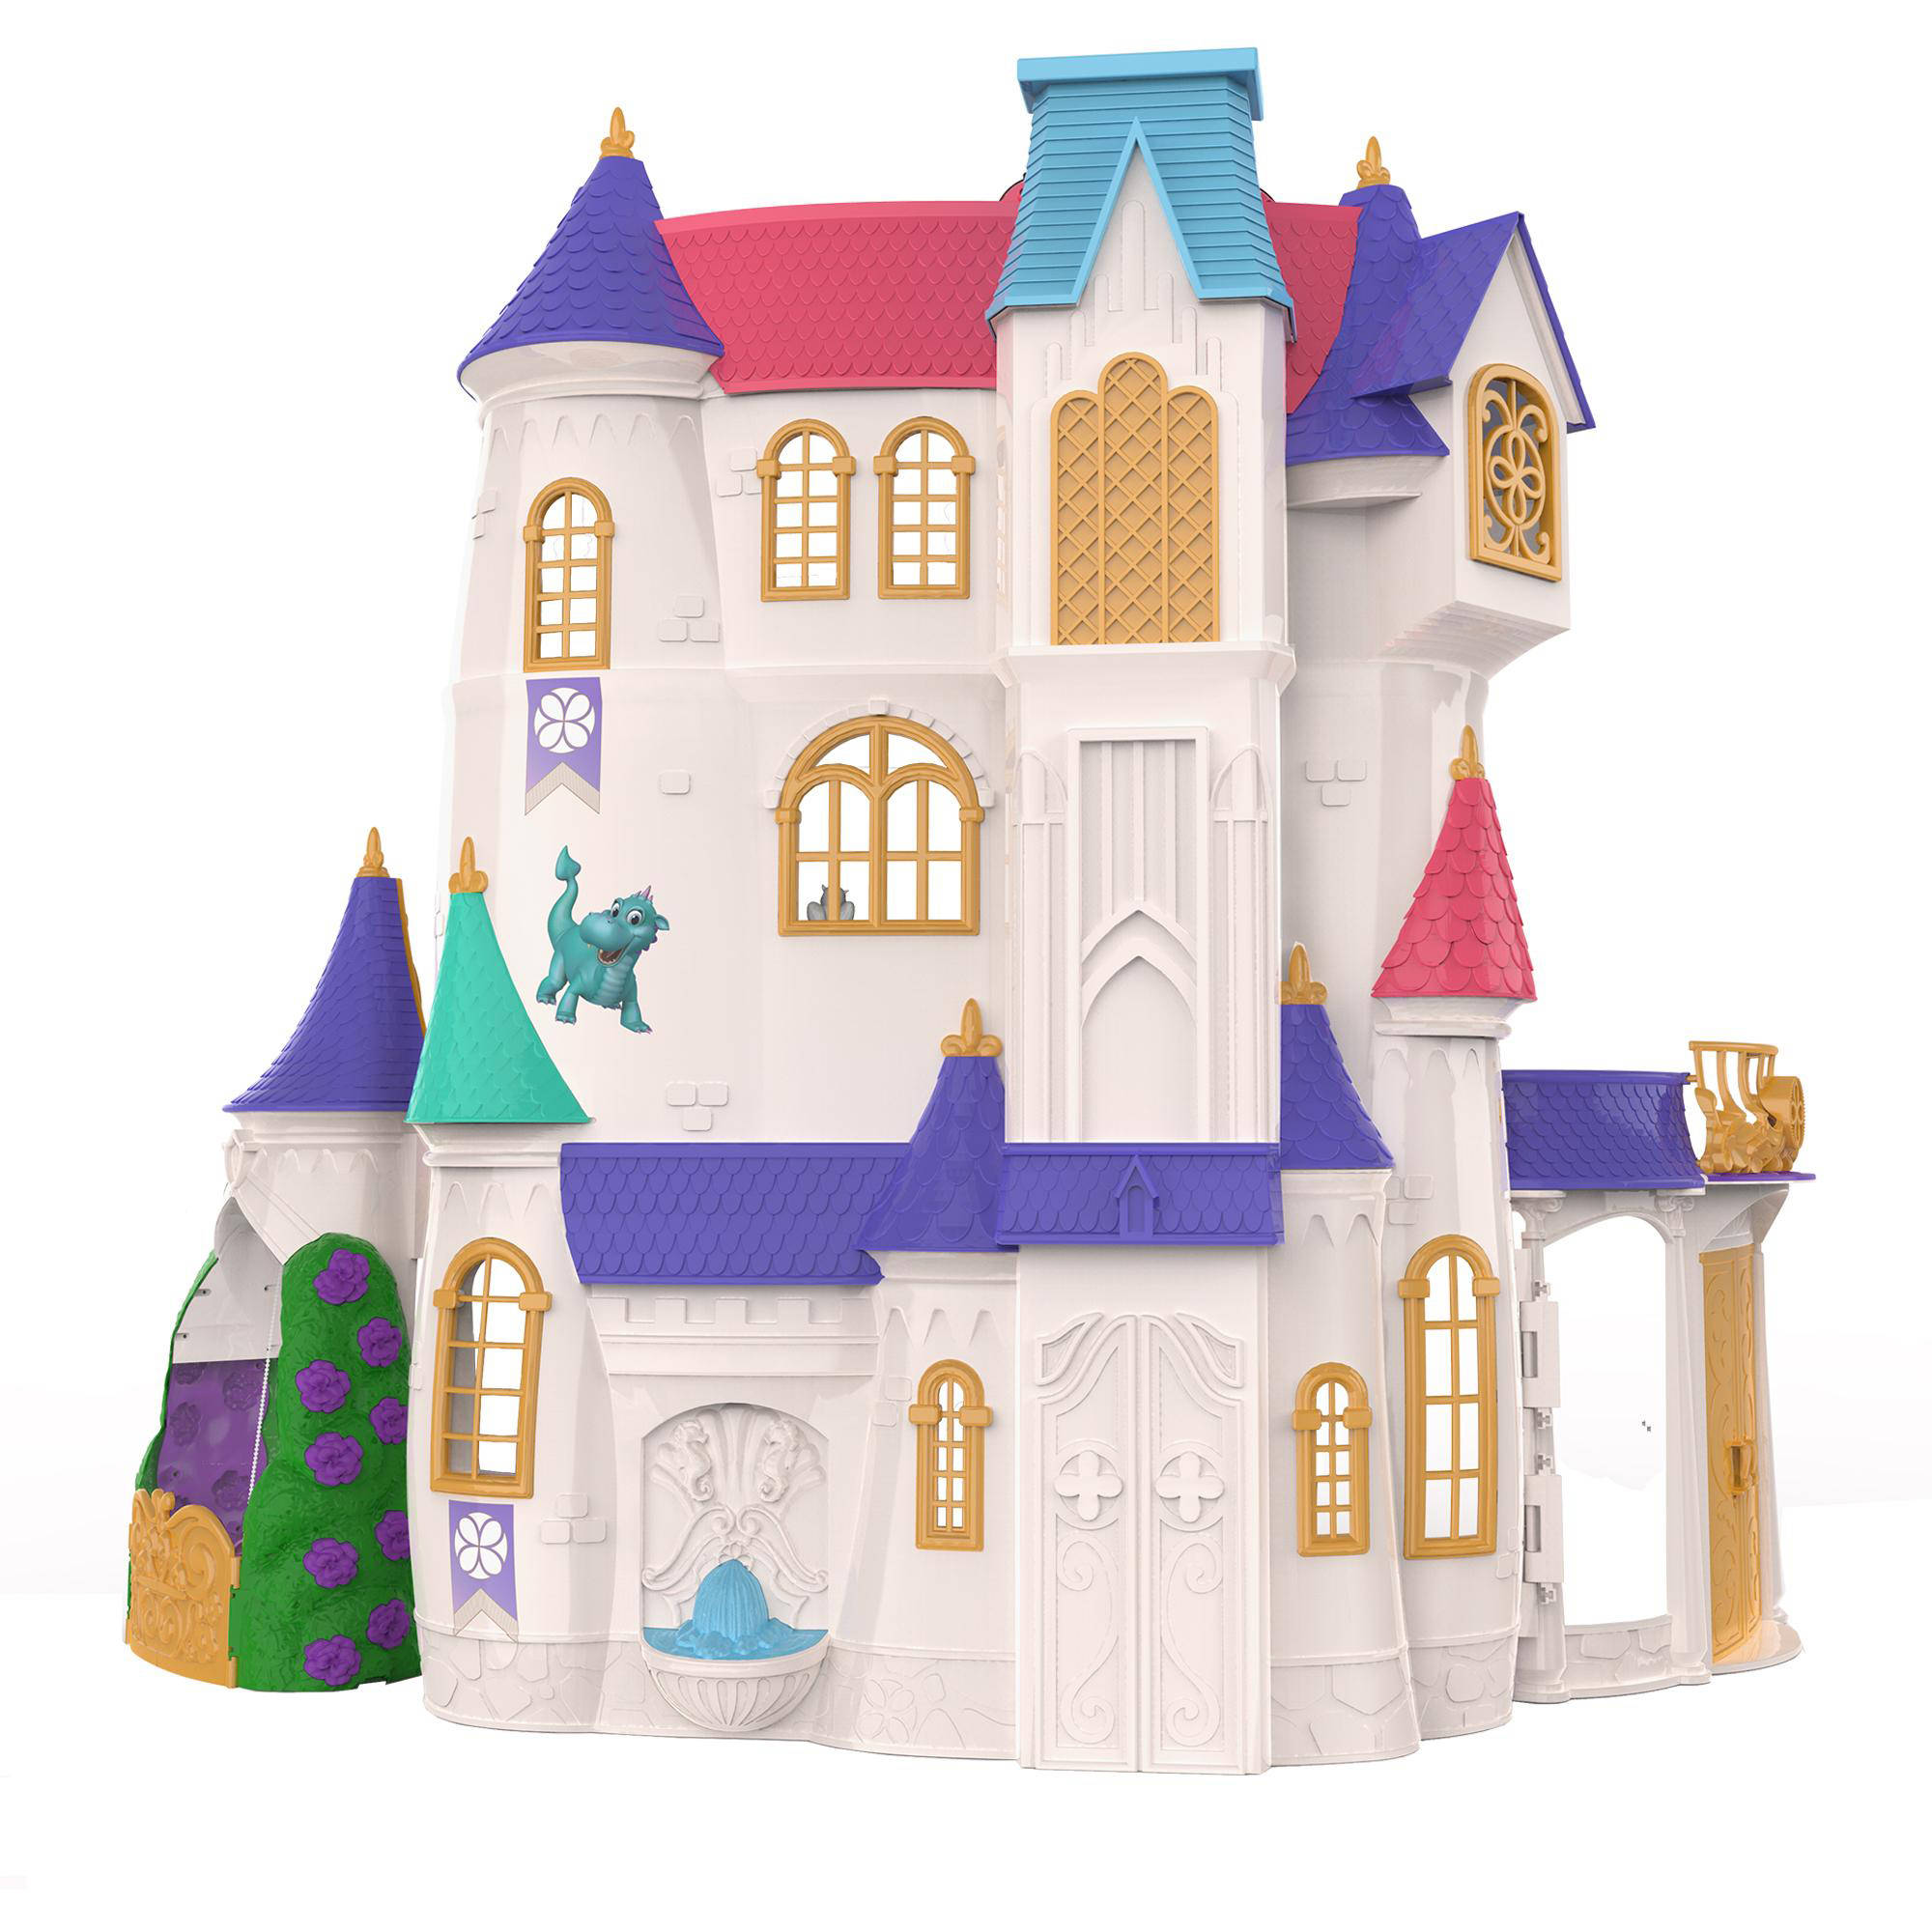 Sofia The First Bedroom Disney Sofia The First Enchancian Castle Over 3 Ft Tall Walmartcom